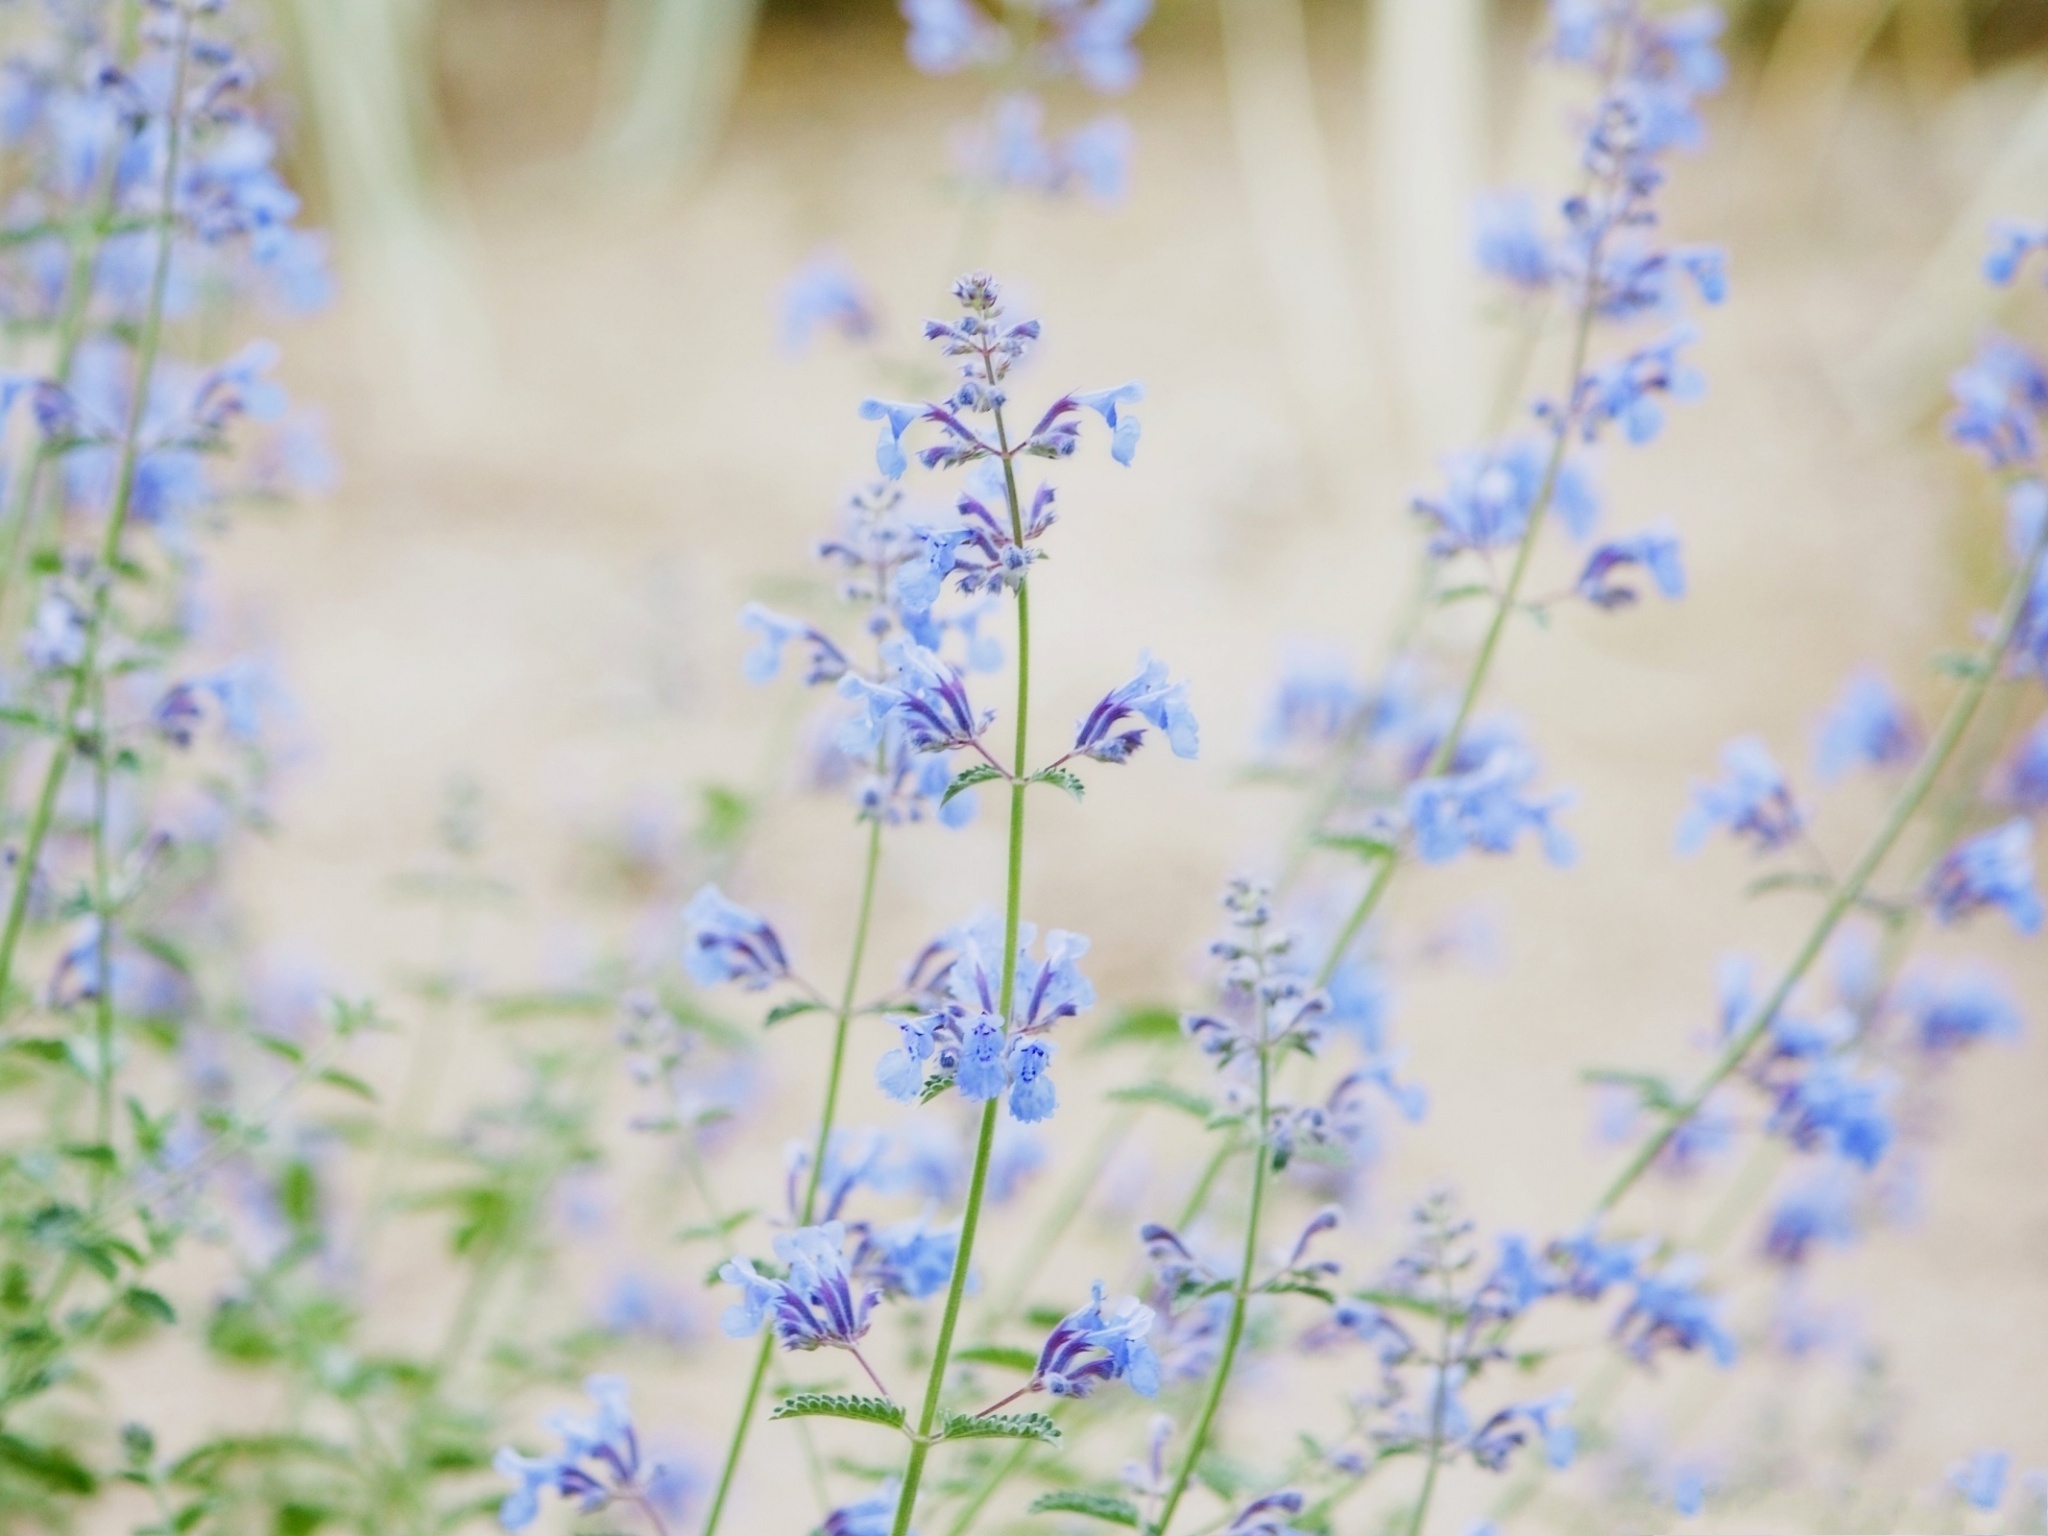 click to free download the wallpaper--Blue Small Flowers, Little Flowers in Bloom, Incredible Scenery 2048X1536 free wallpaper download